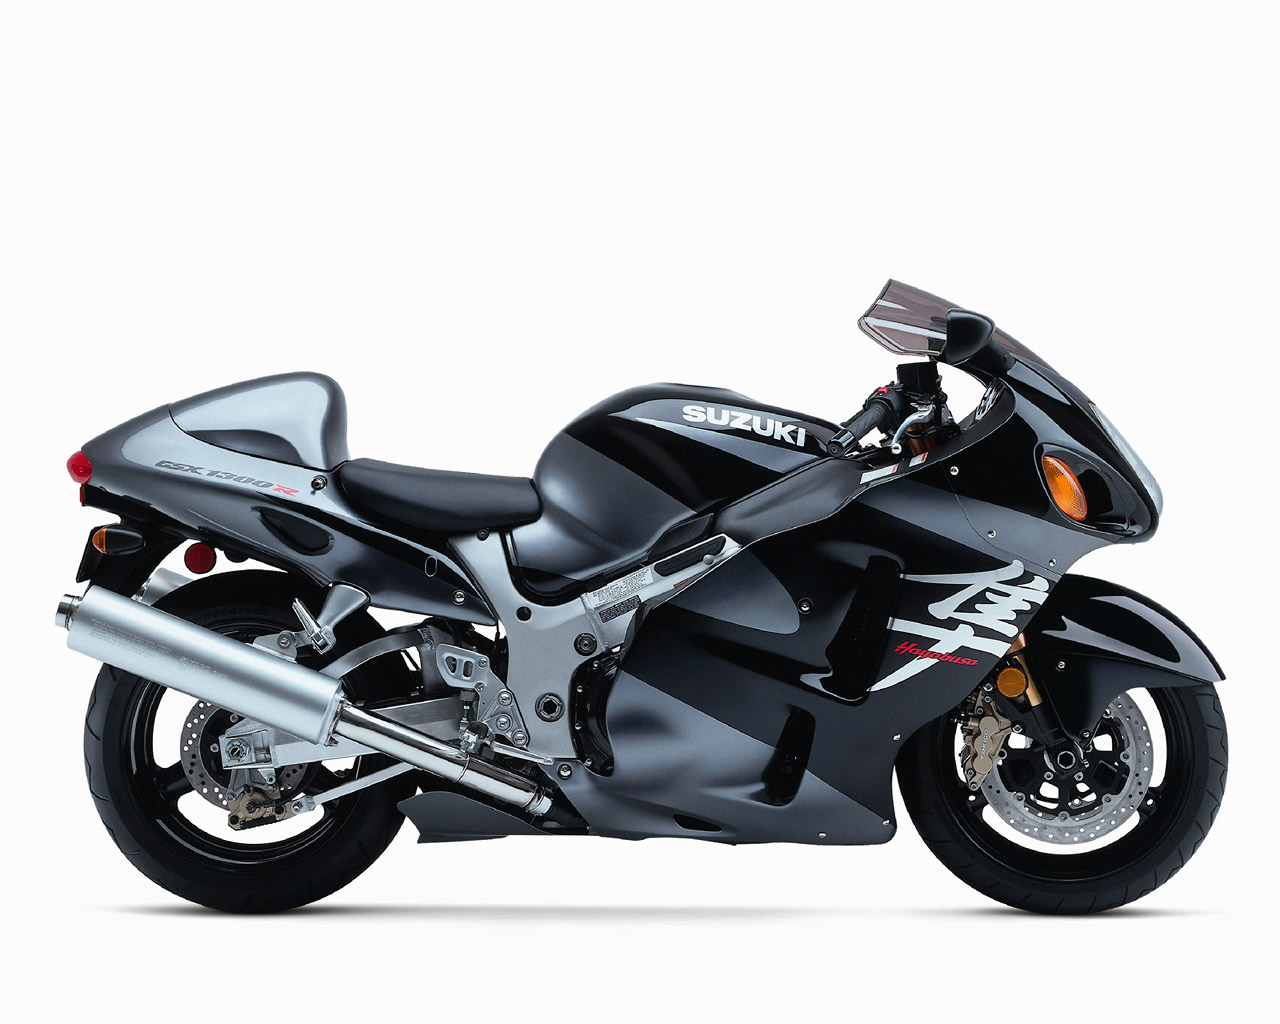 FULL WALLPAPER: Sport Bikes Wallpapers